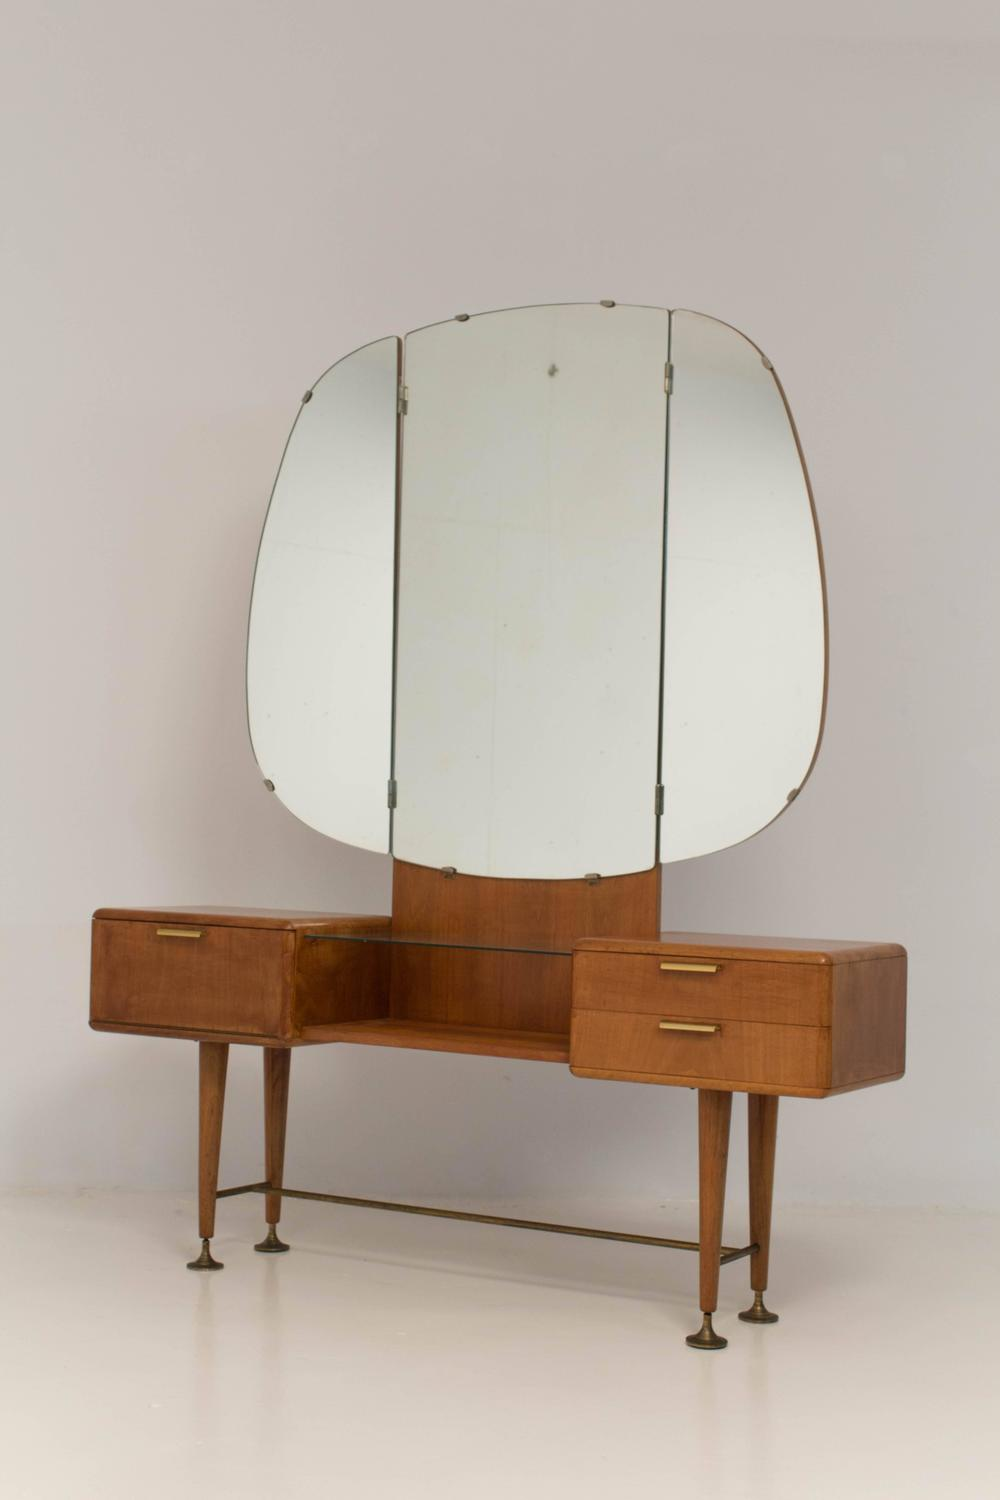 Rare mid century modern vanity or dressing table by a a patijn for zijlstra at 1stdibs - Modern bathroom dressing table ...